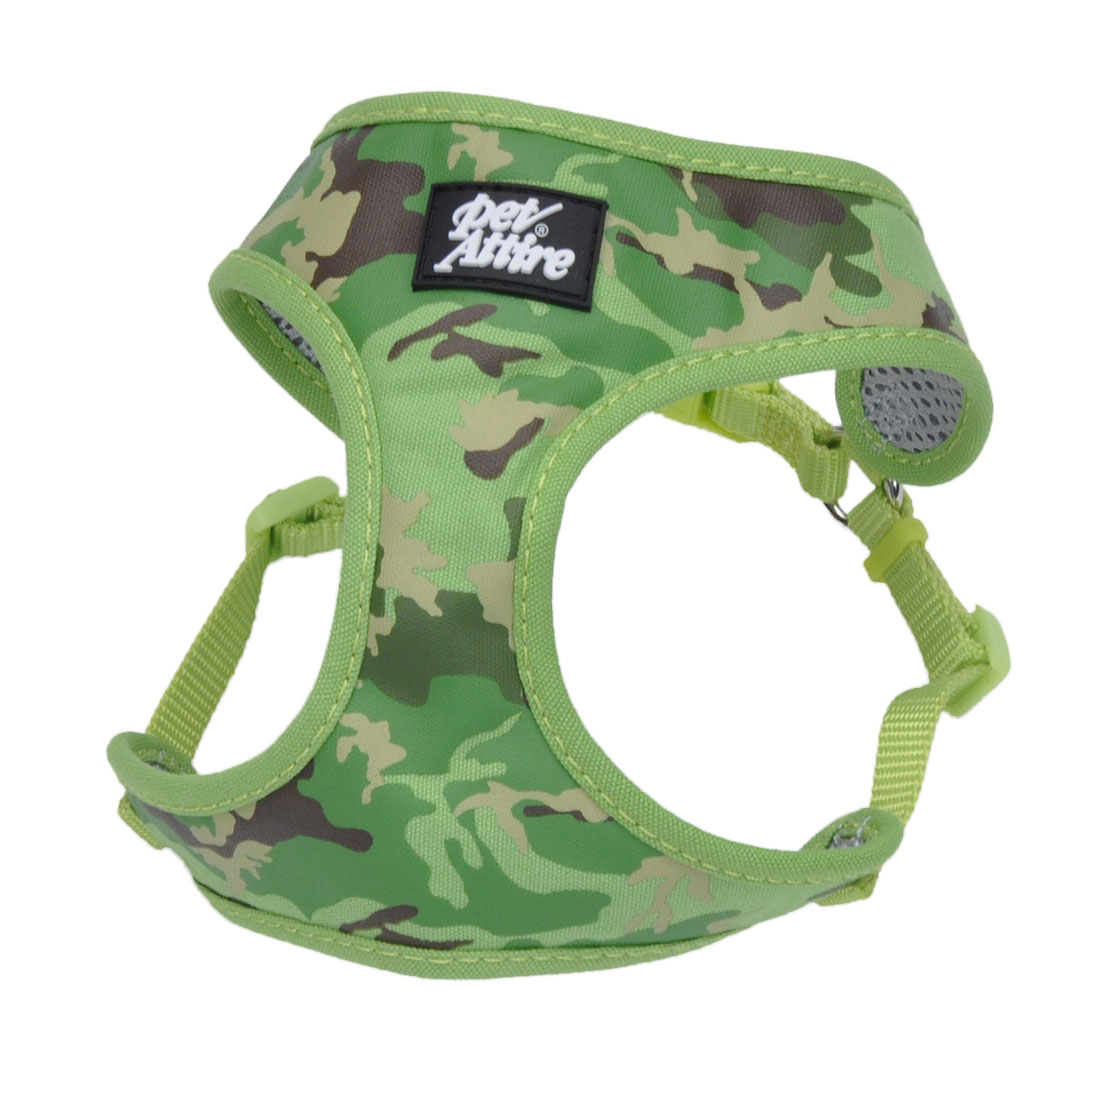 Ribbon Designer Wrap Adjustable Dog Harness, Lime Camoflage, 3/8-in x 14-in-16-in